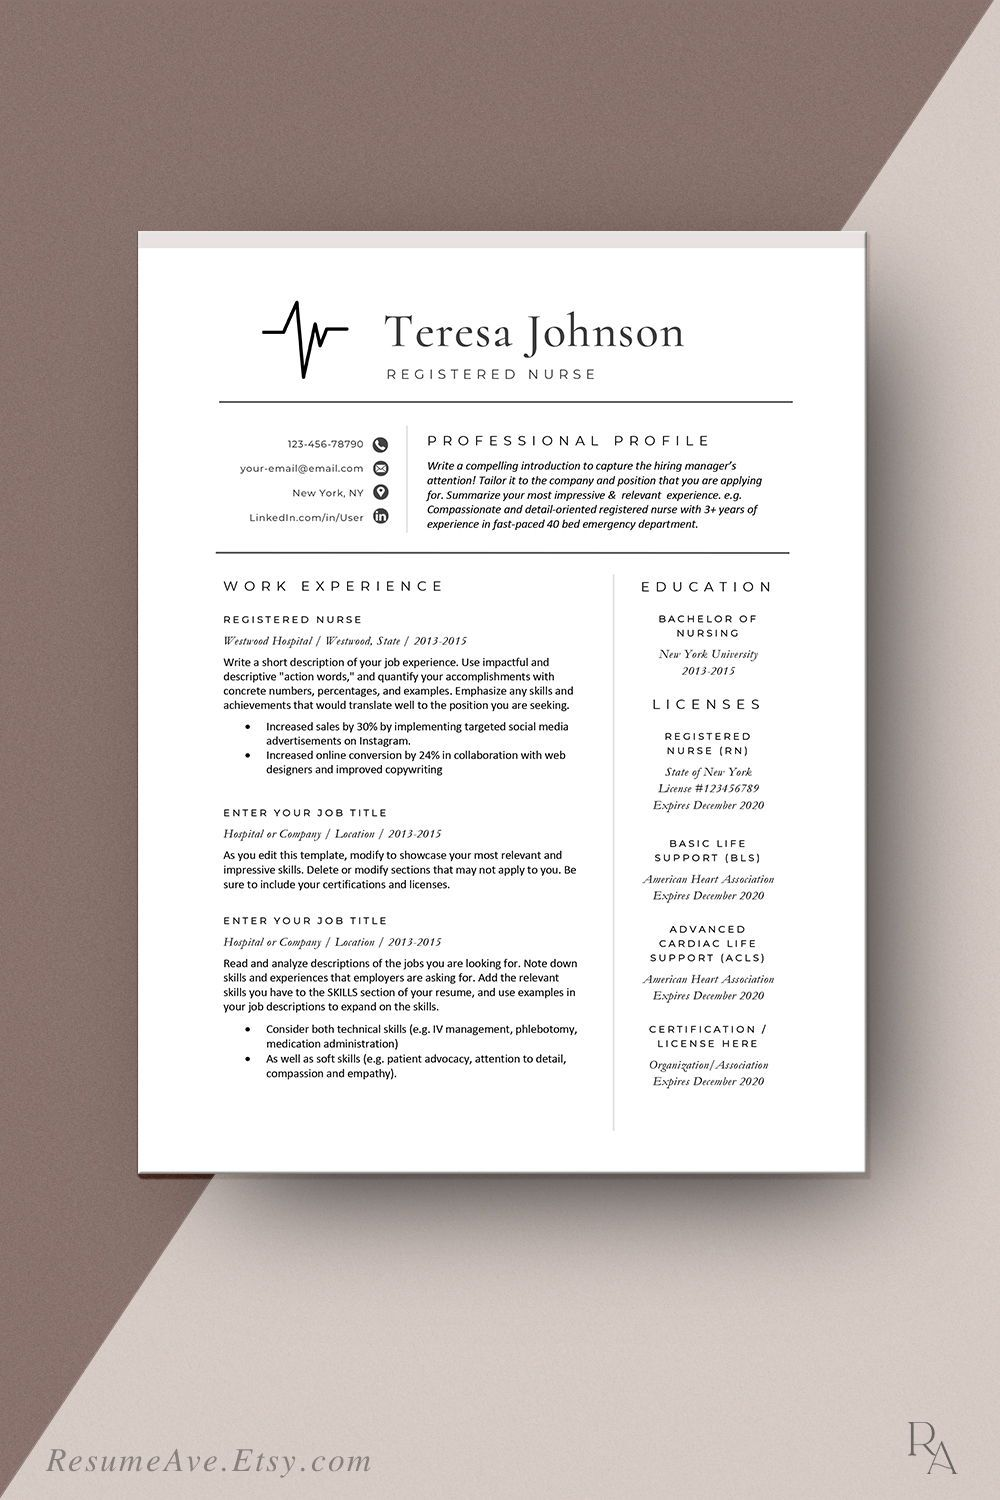 Nurse resume template with heart tracing for digital